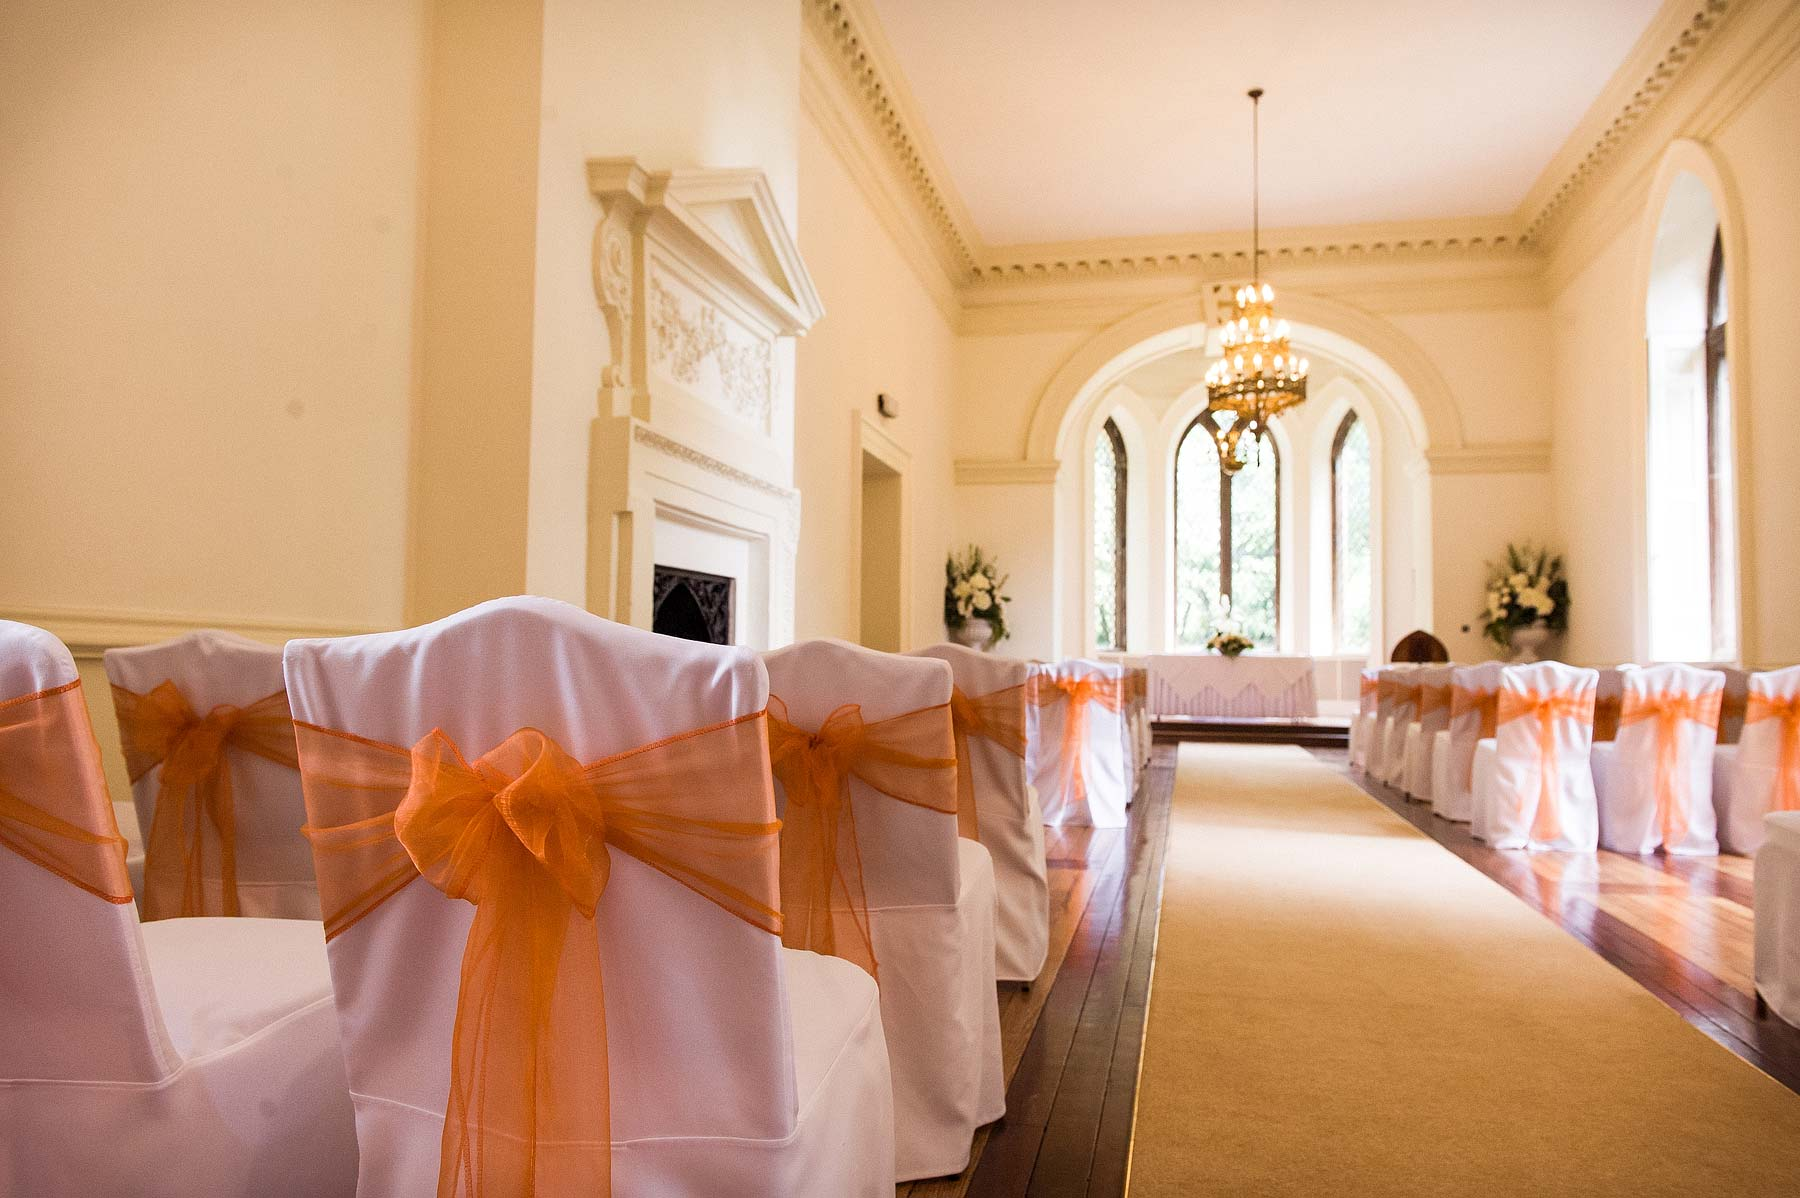 clearwell-castle-wedding-photographers-004